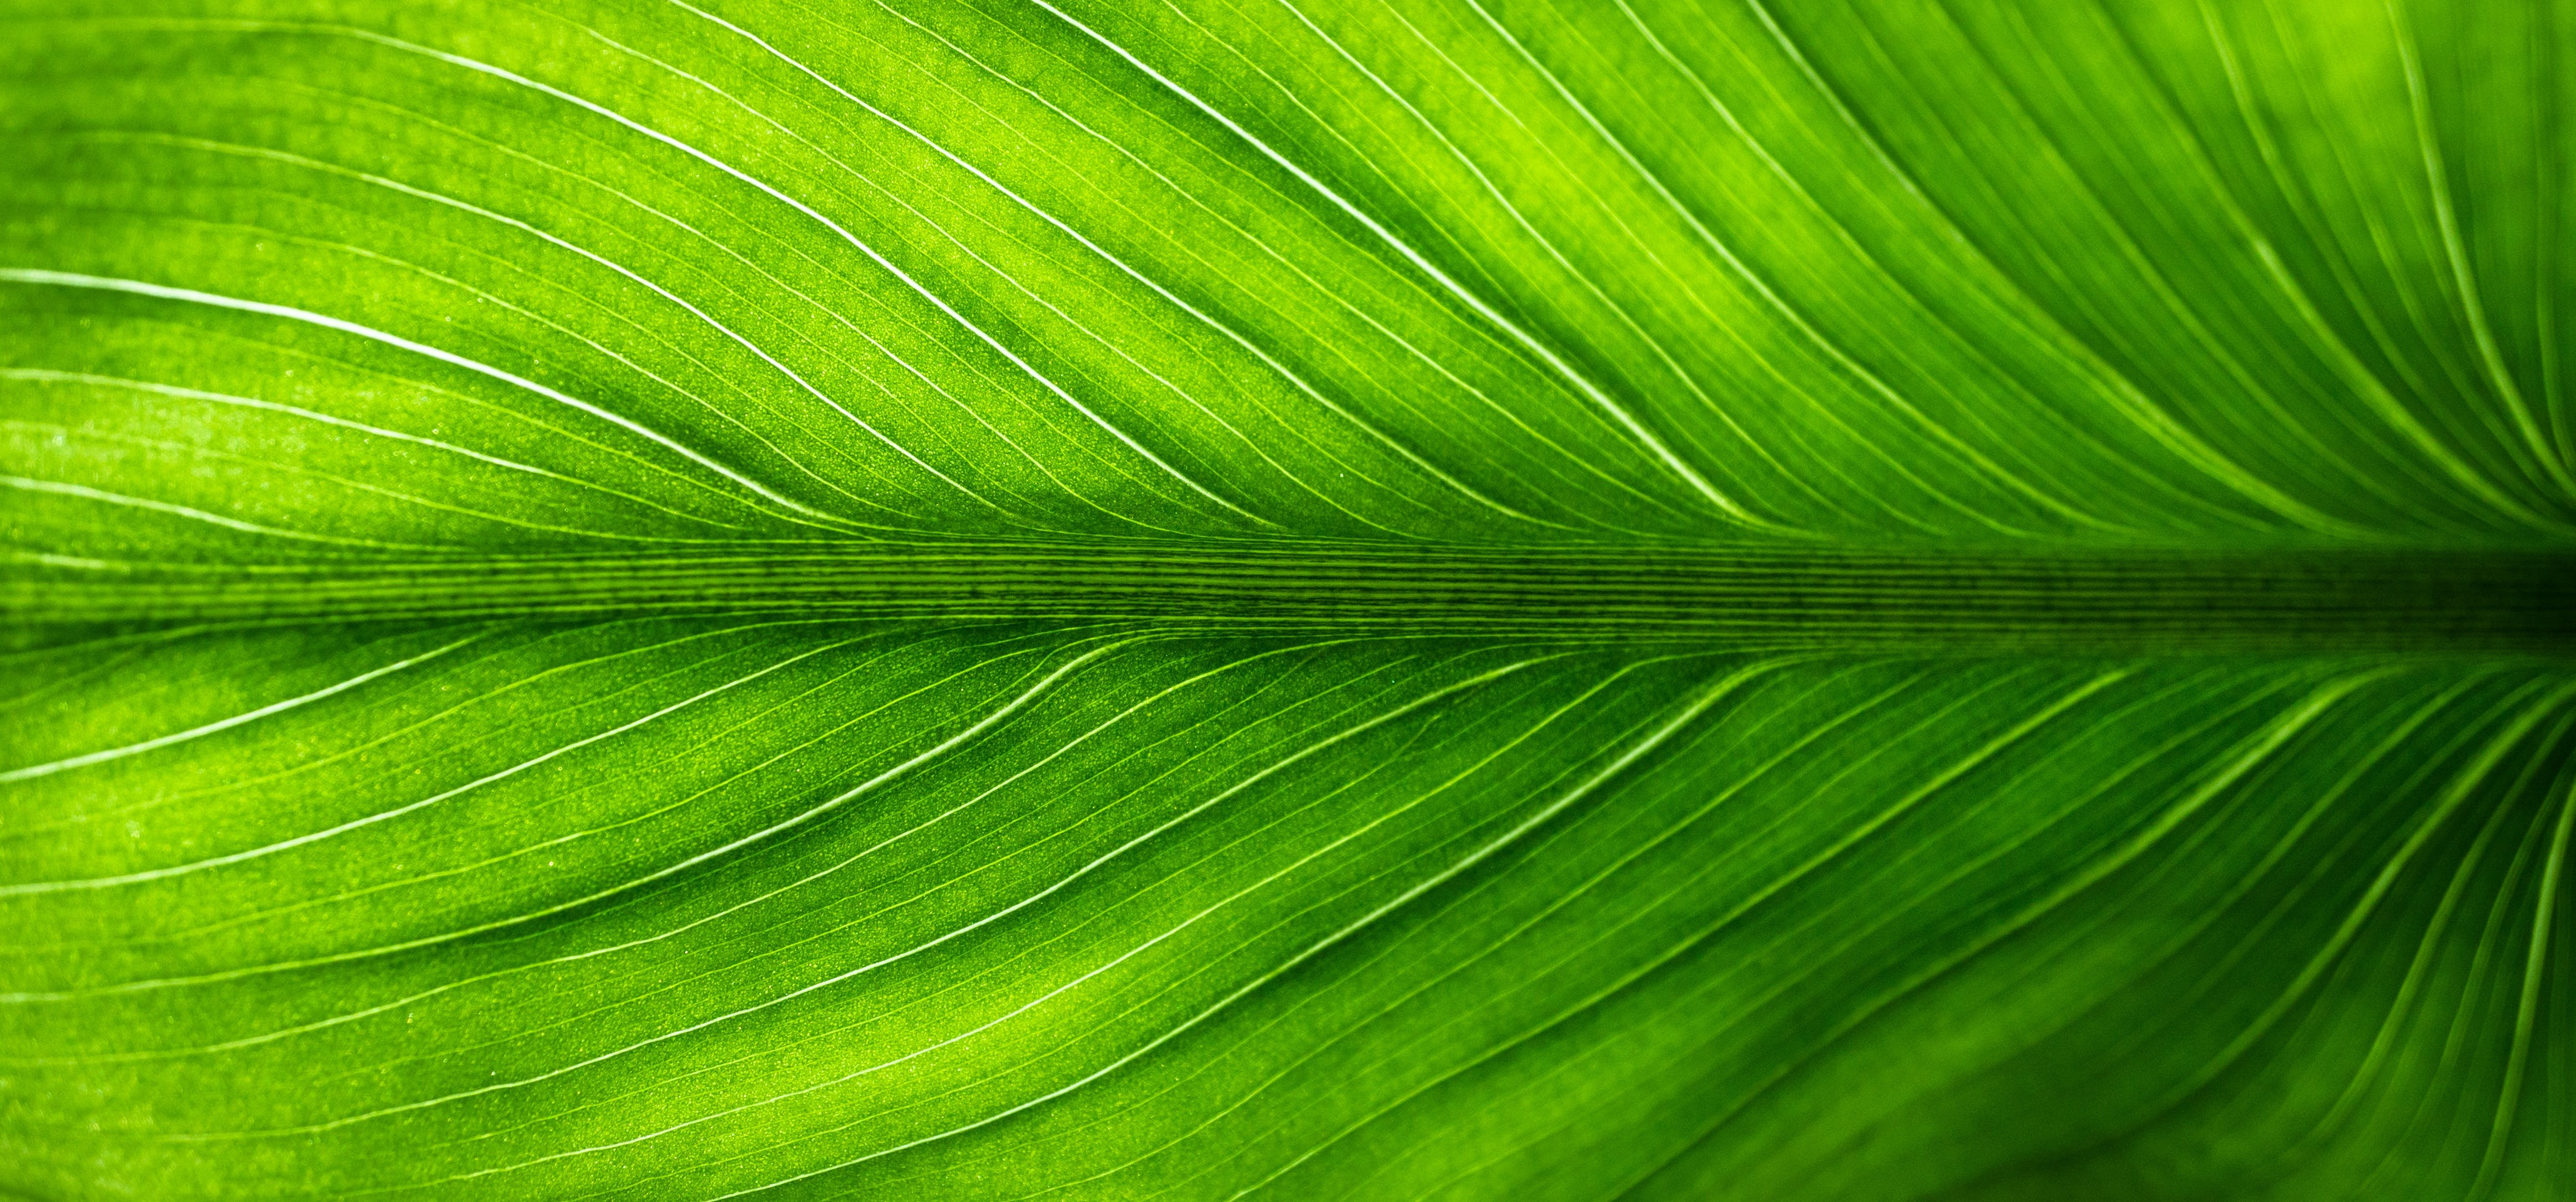 Free stock photo of nature, forest, abstract, leaf